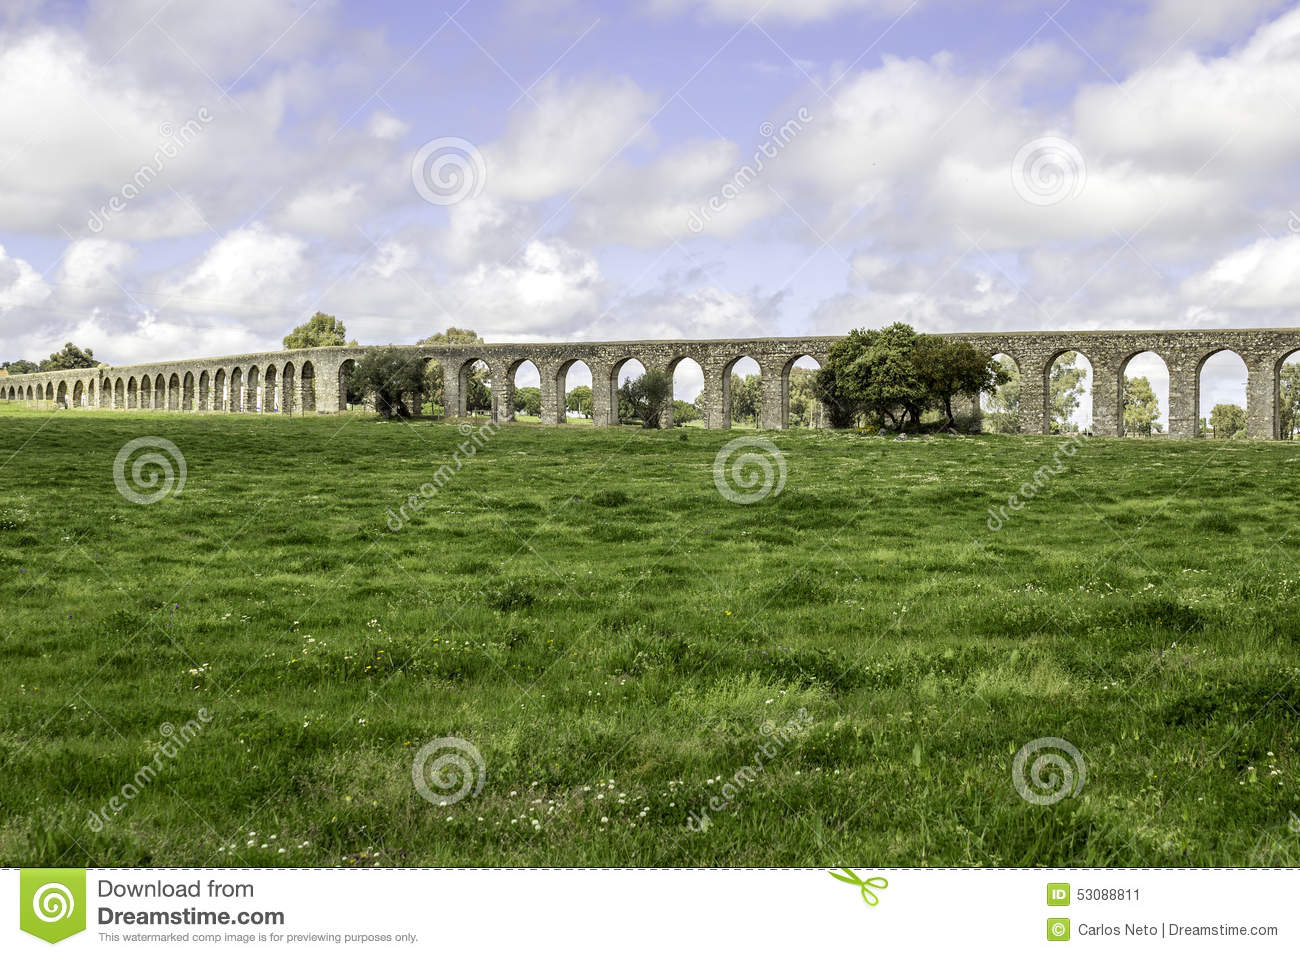 Its Huge Arches Stretching For 9 Kilometres 6 Miles This Aqueduct Was Built In 1531EUR1537 By King Joao III To Supply